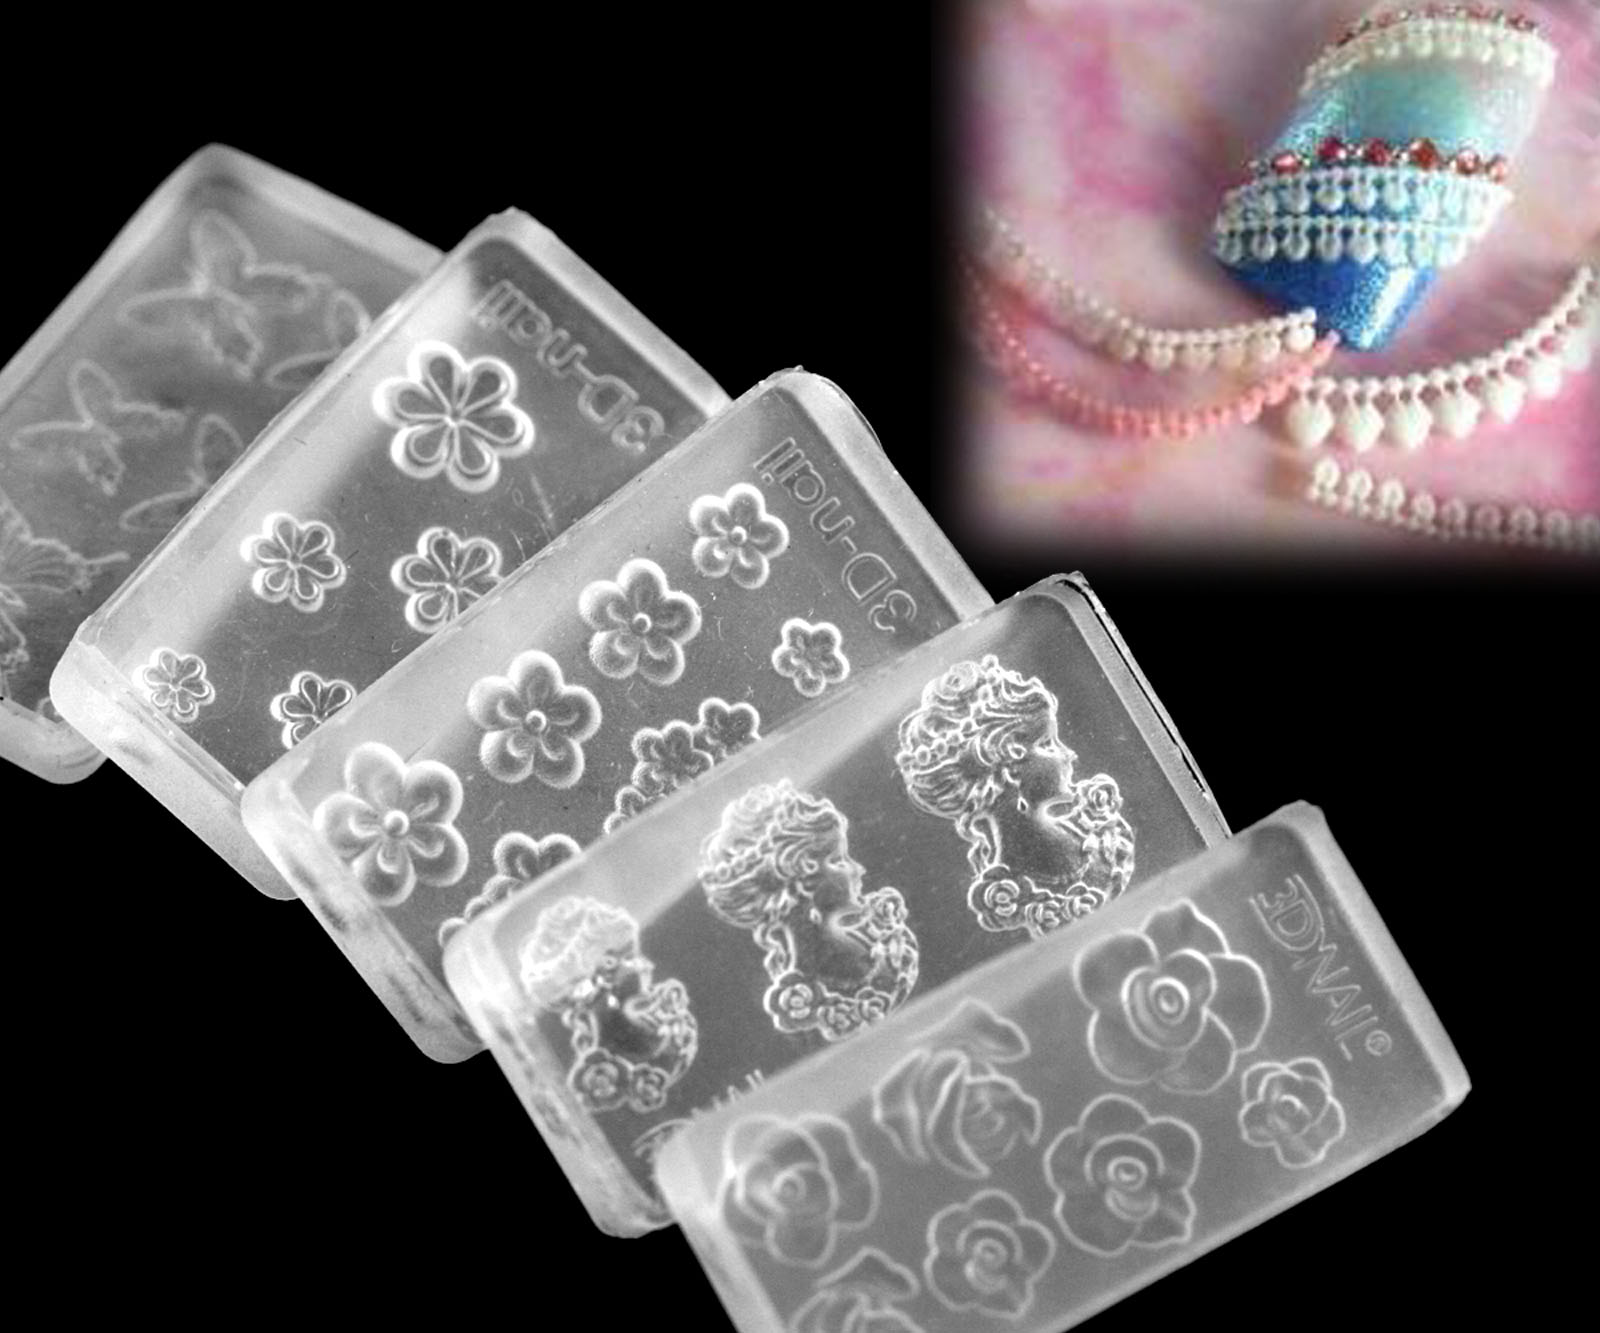 30 different 3d acrylic nail art tips mold diy decoration for 3d acrylic nail art mold diy decoration